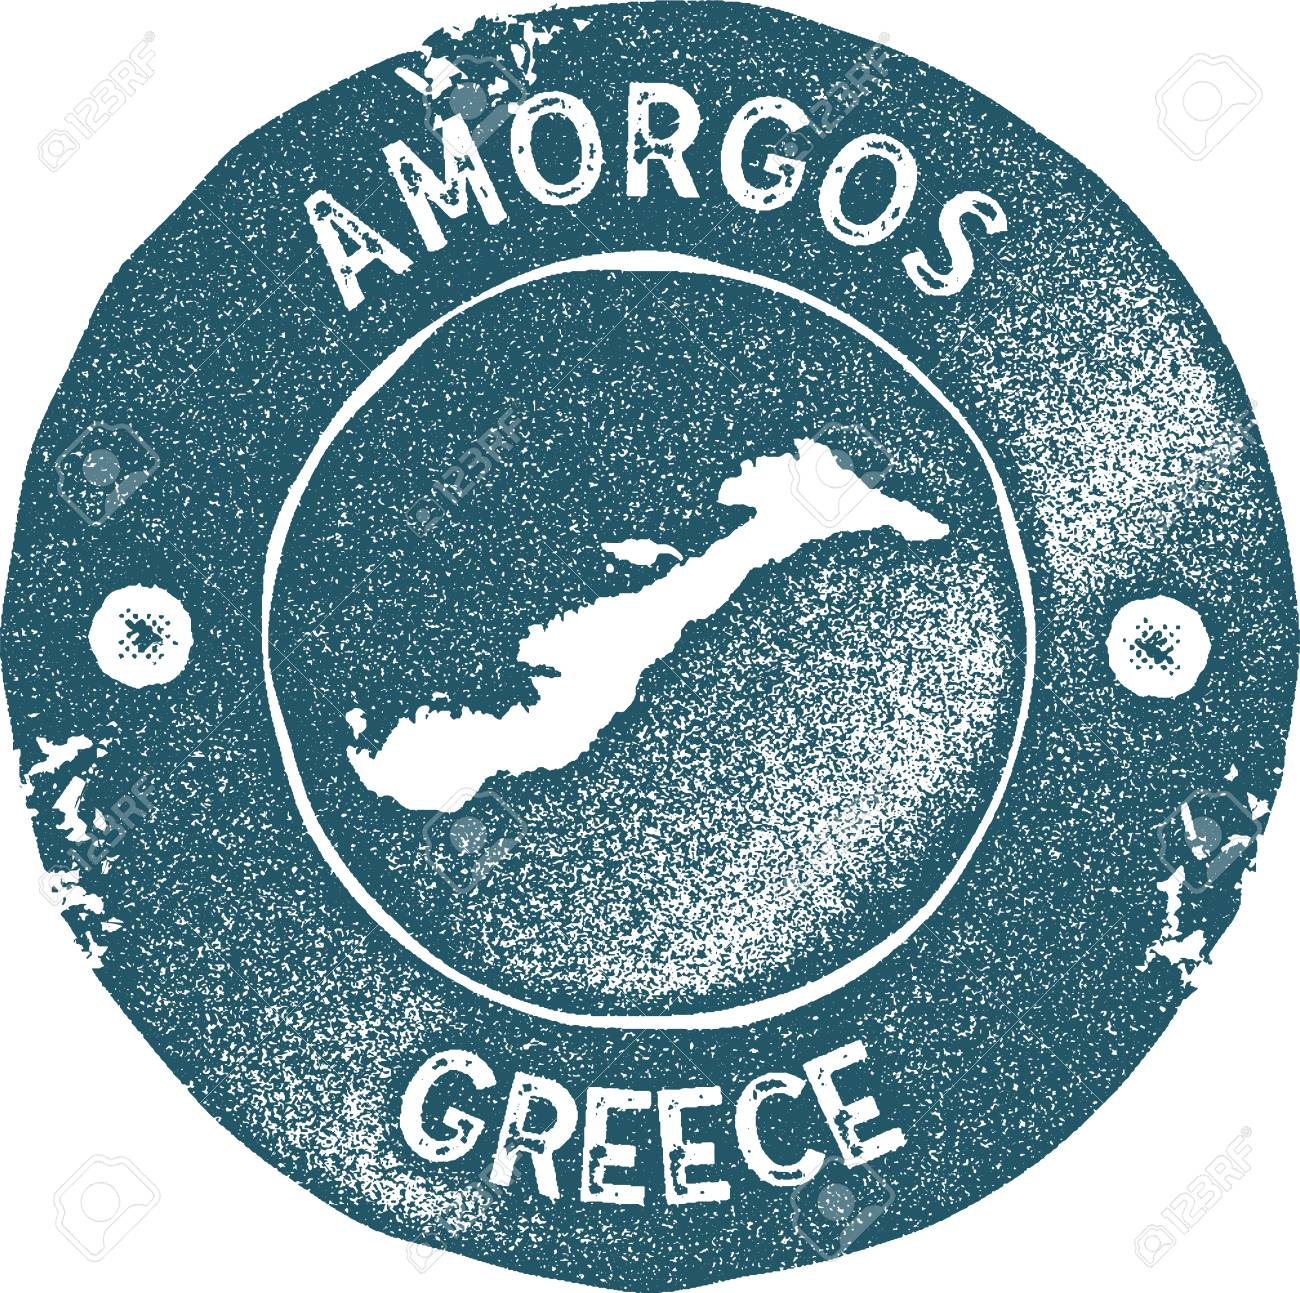 Amorgos Map Vintage Stamp Retro Style Handmade Label Badge